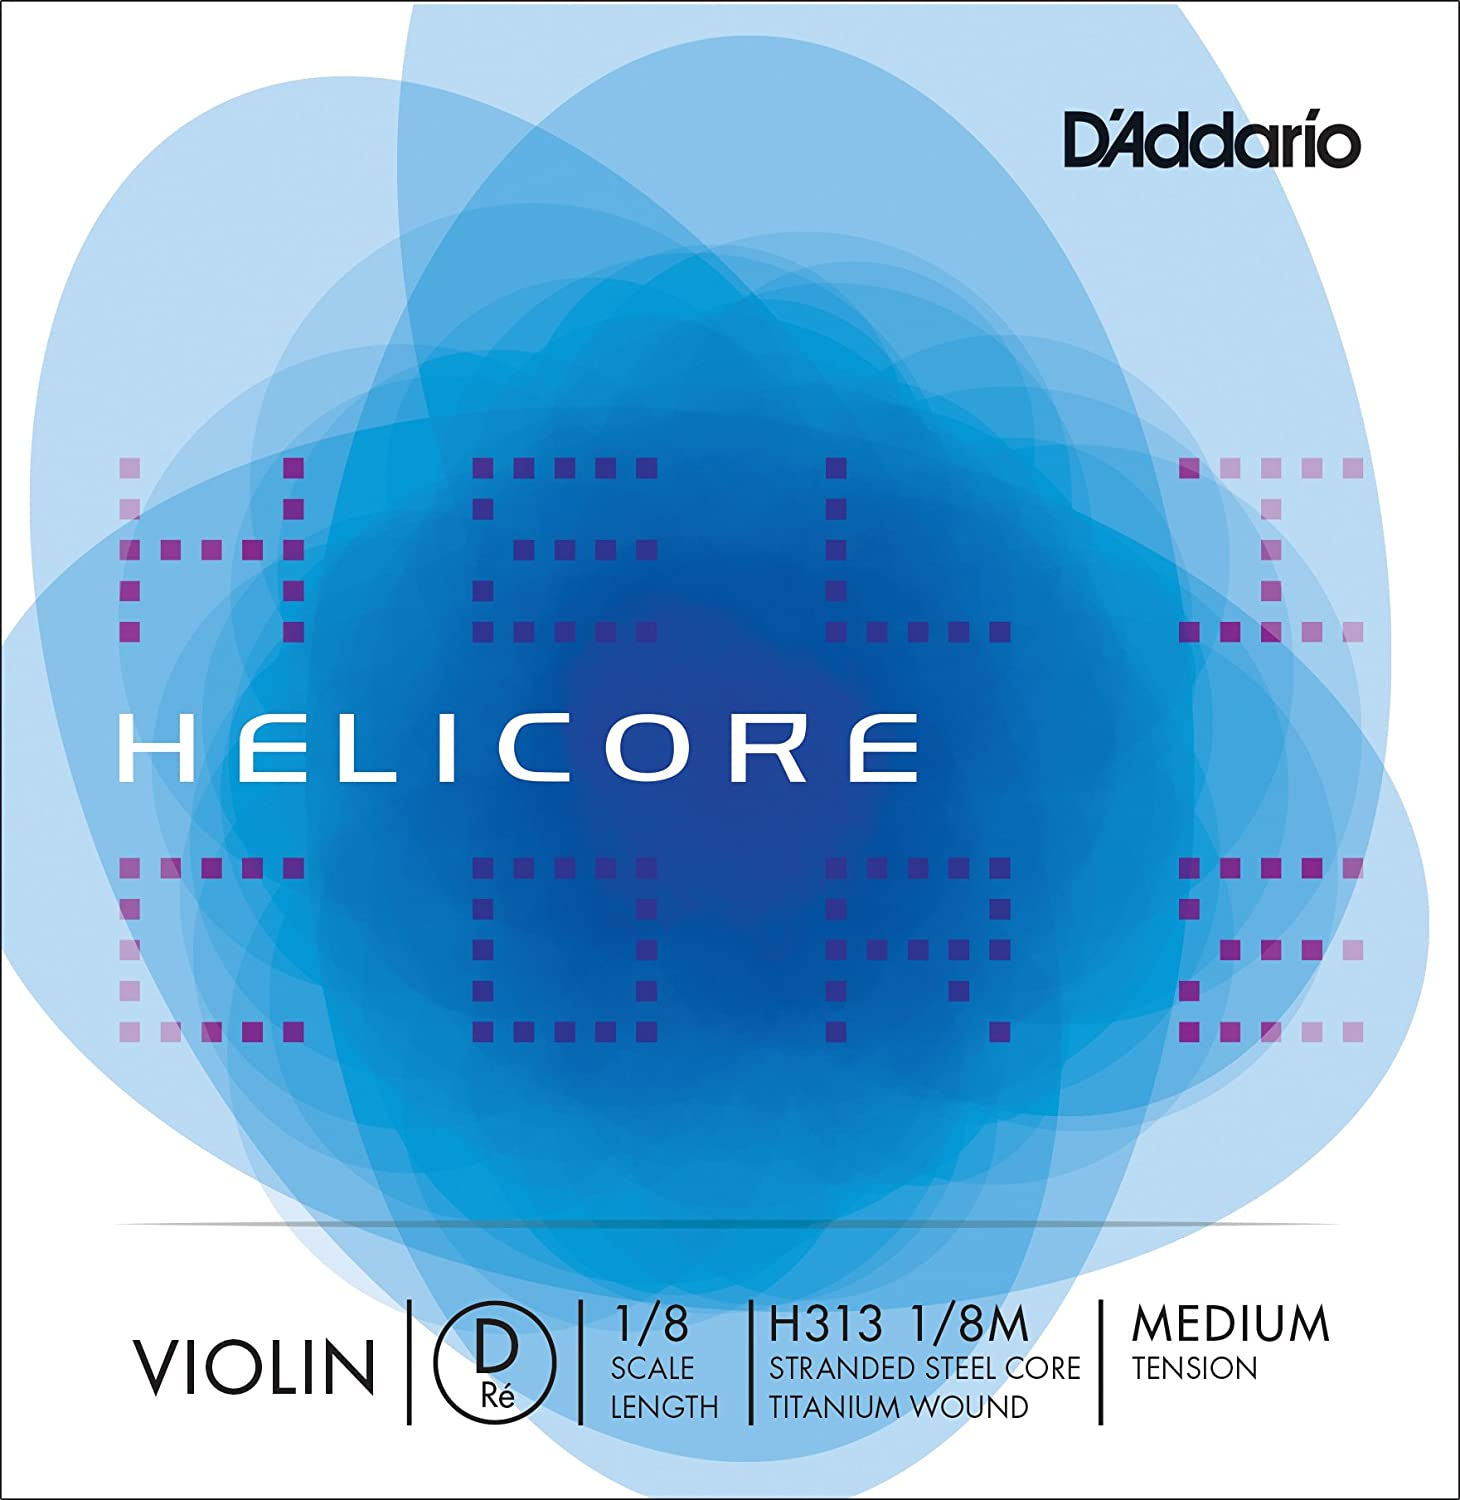 D'Addario Helicore Violin Single D String, 4/4 Scale, Heavy Tension D' Addario H313 4/4H